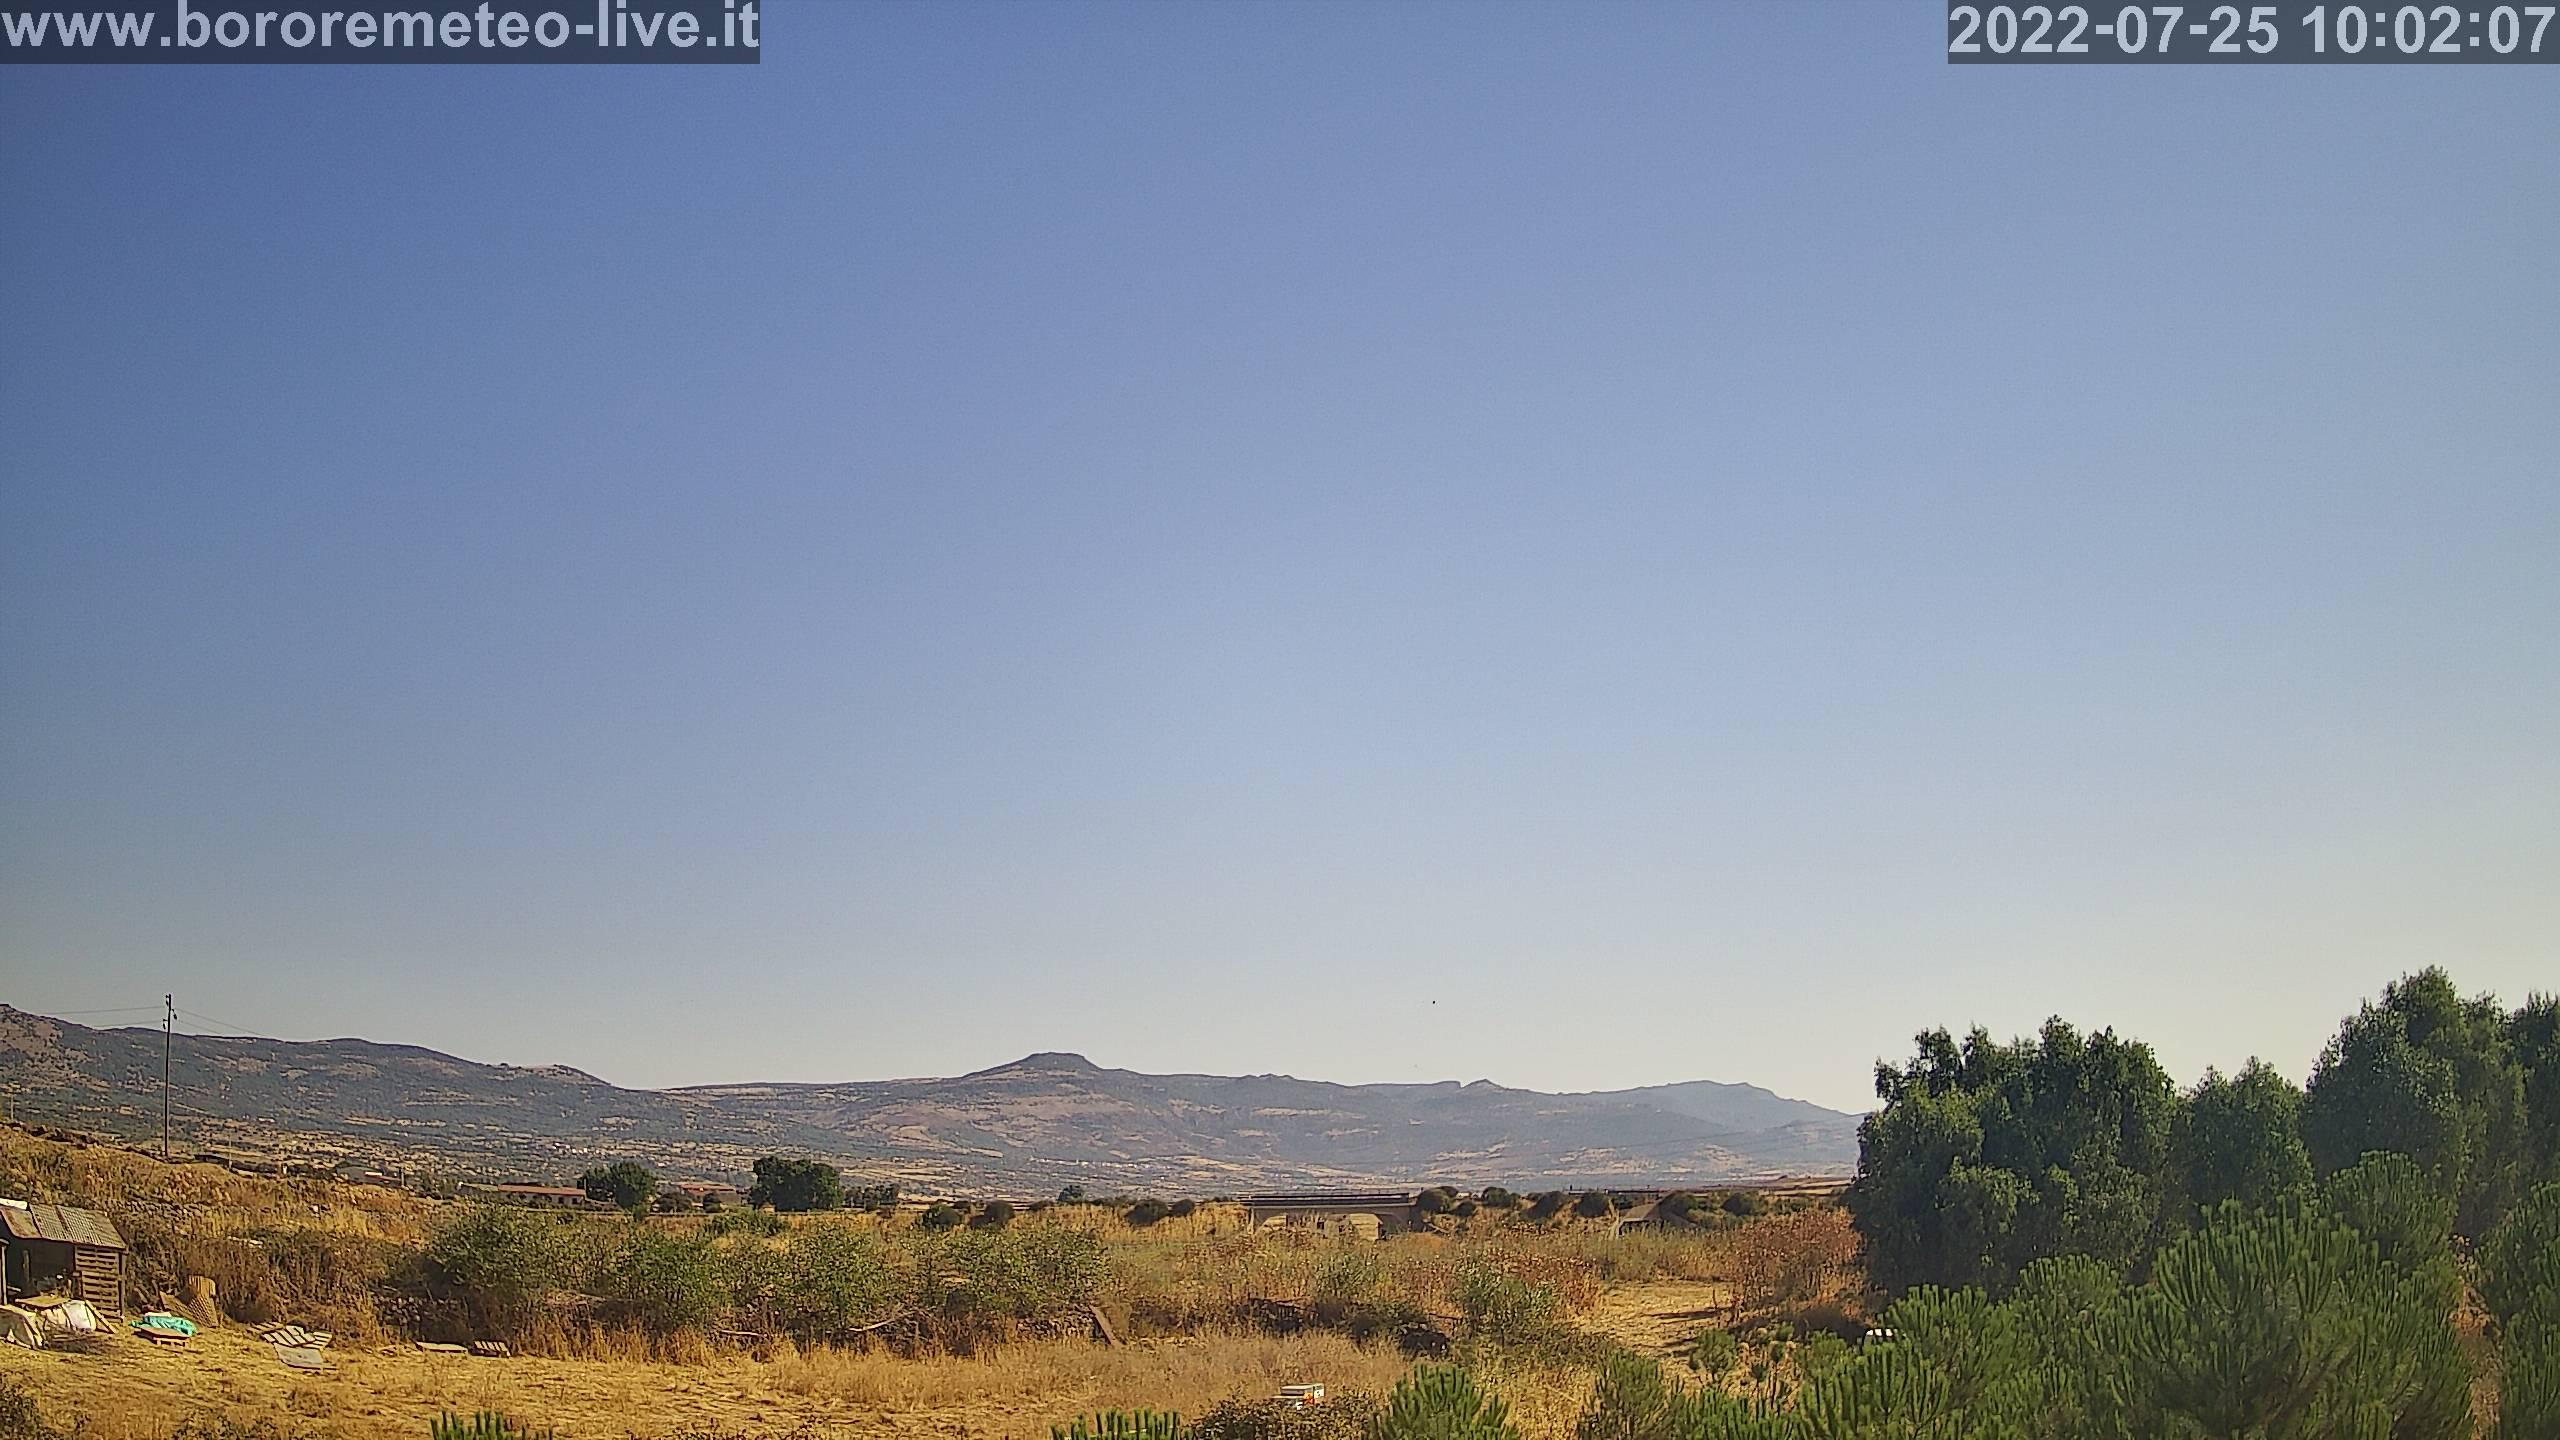 http://www.bororemeteo-live.it/deas/webcam.php